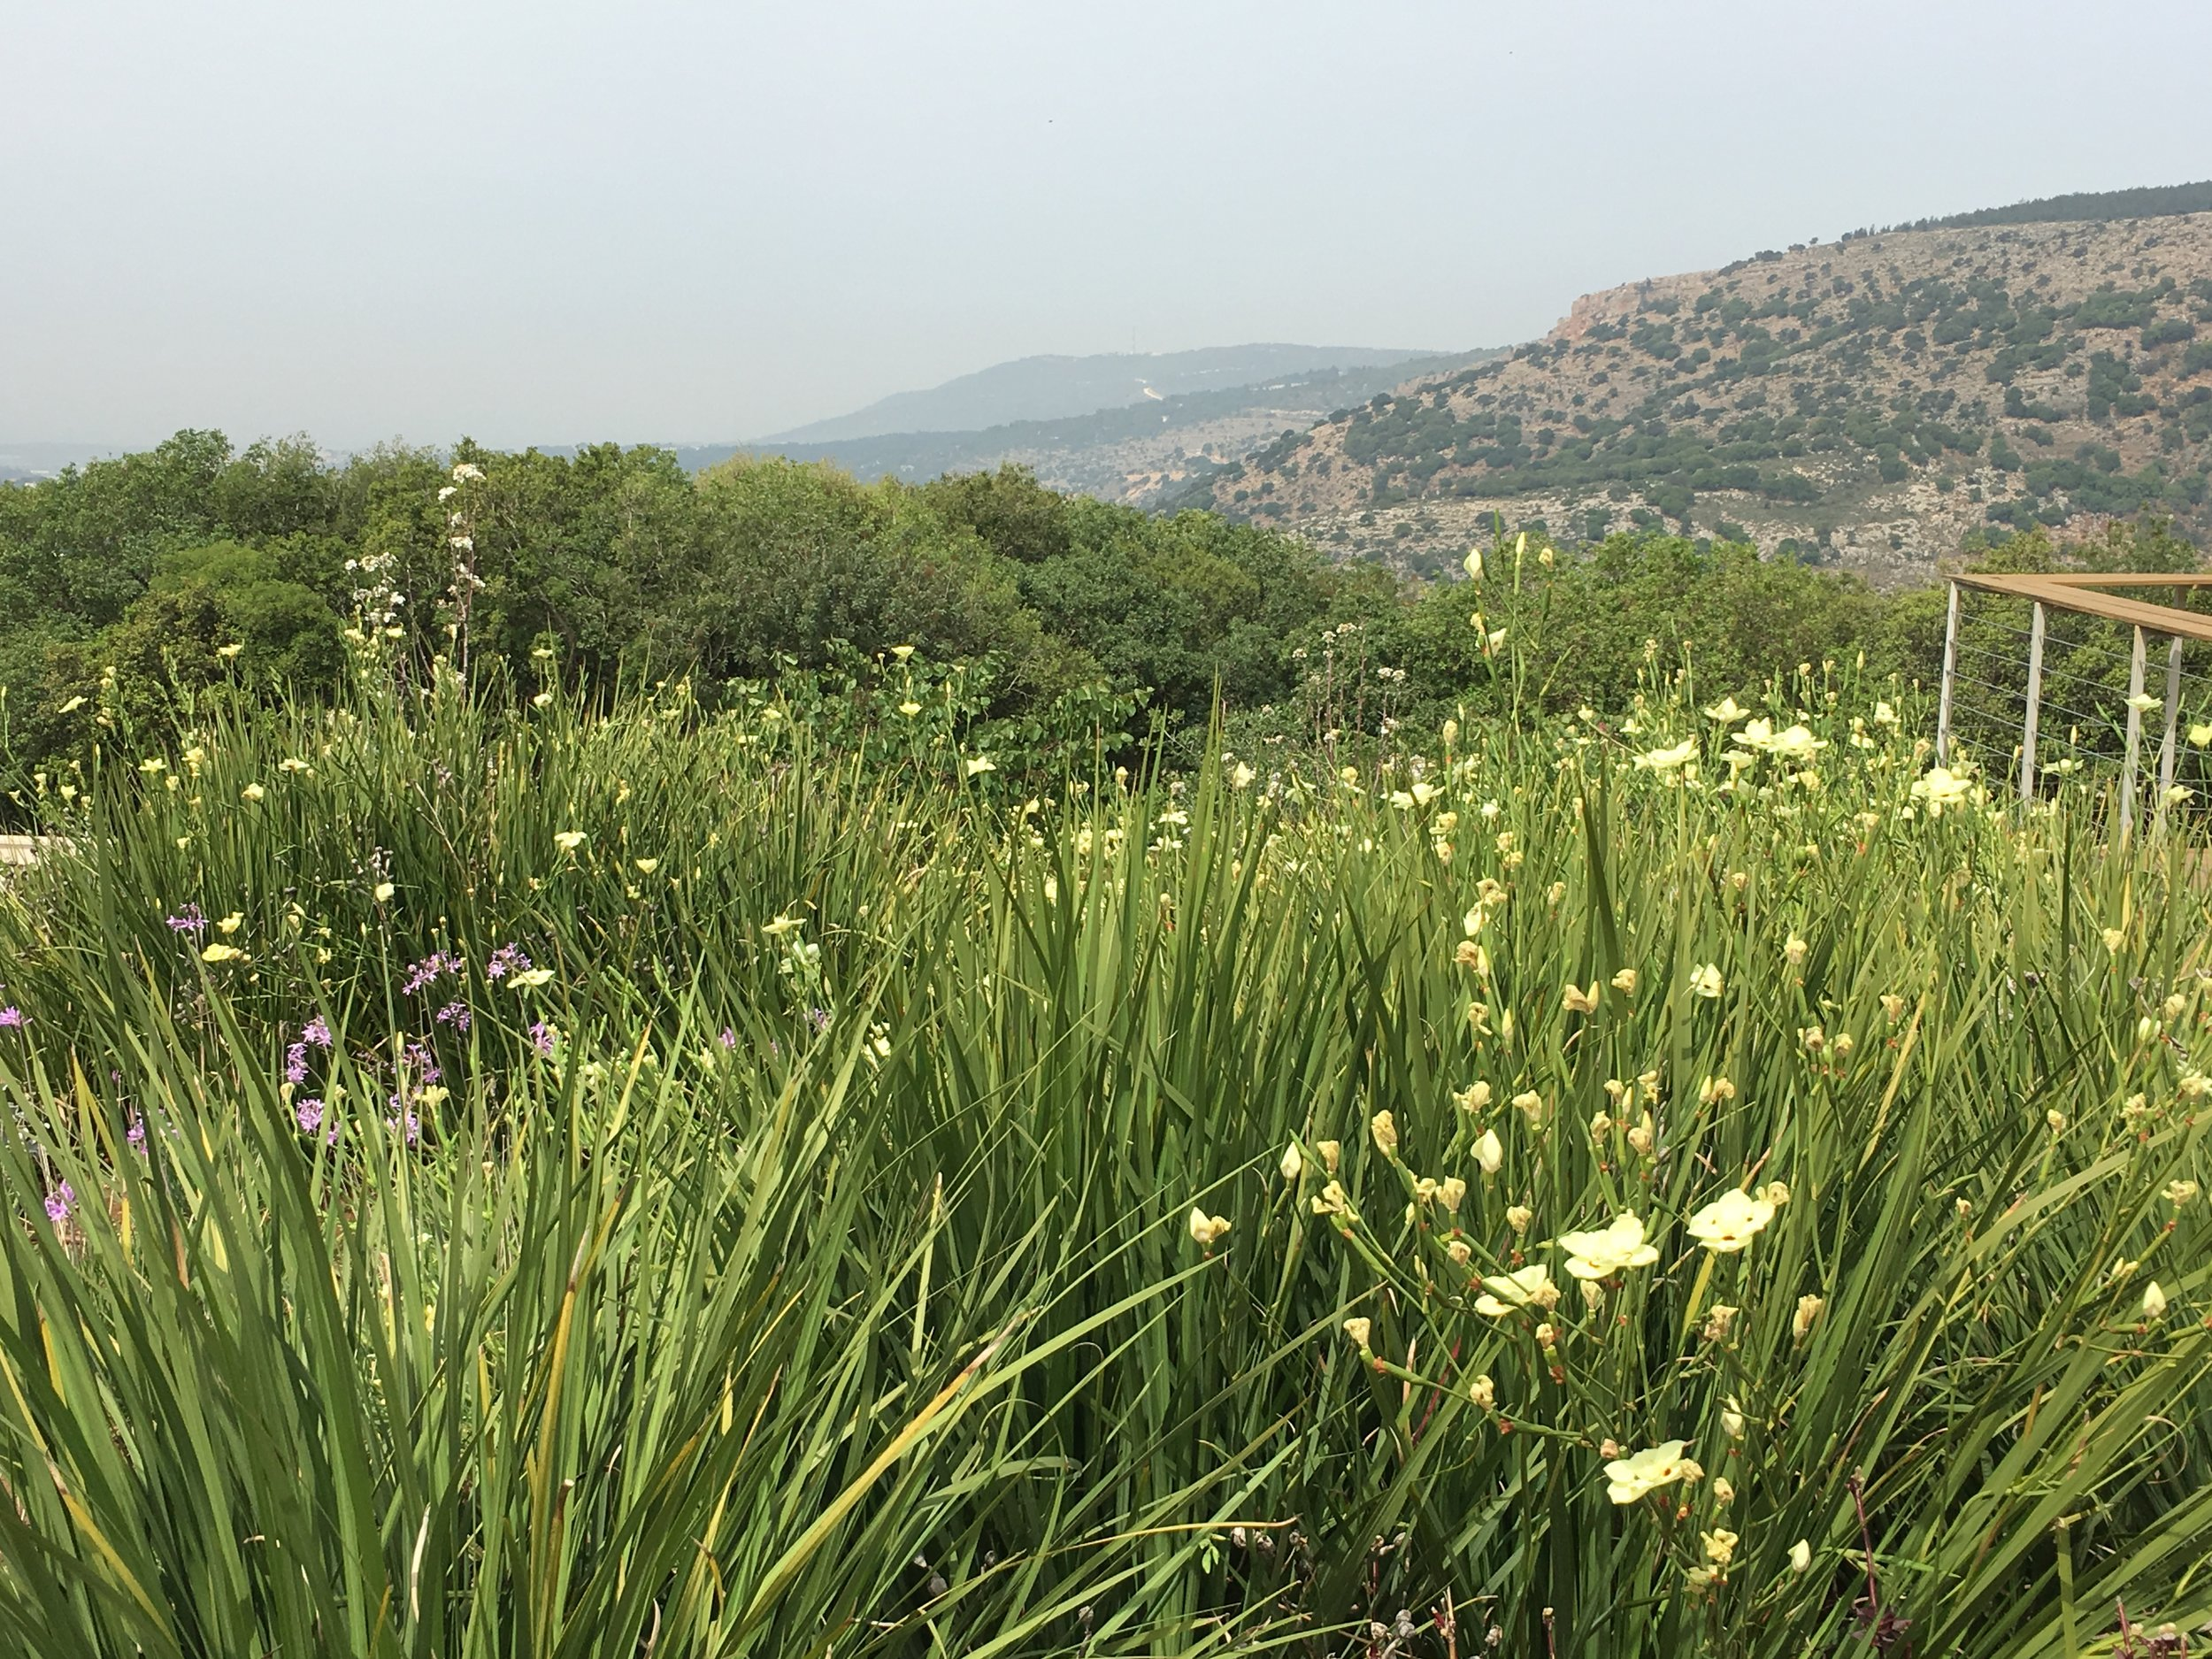 Spring in the Golan Heights